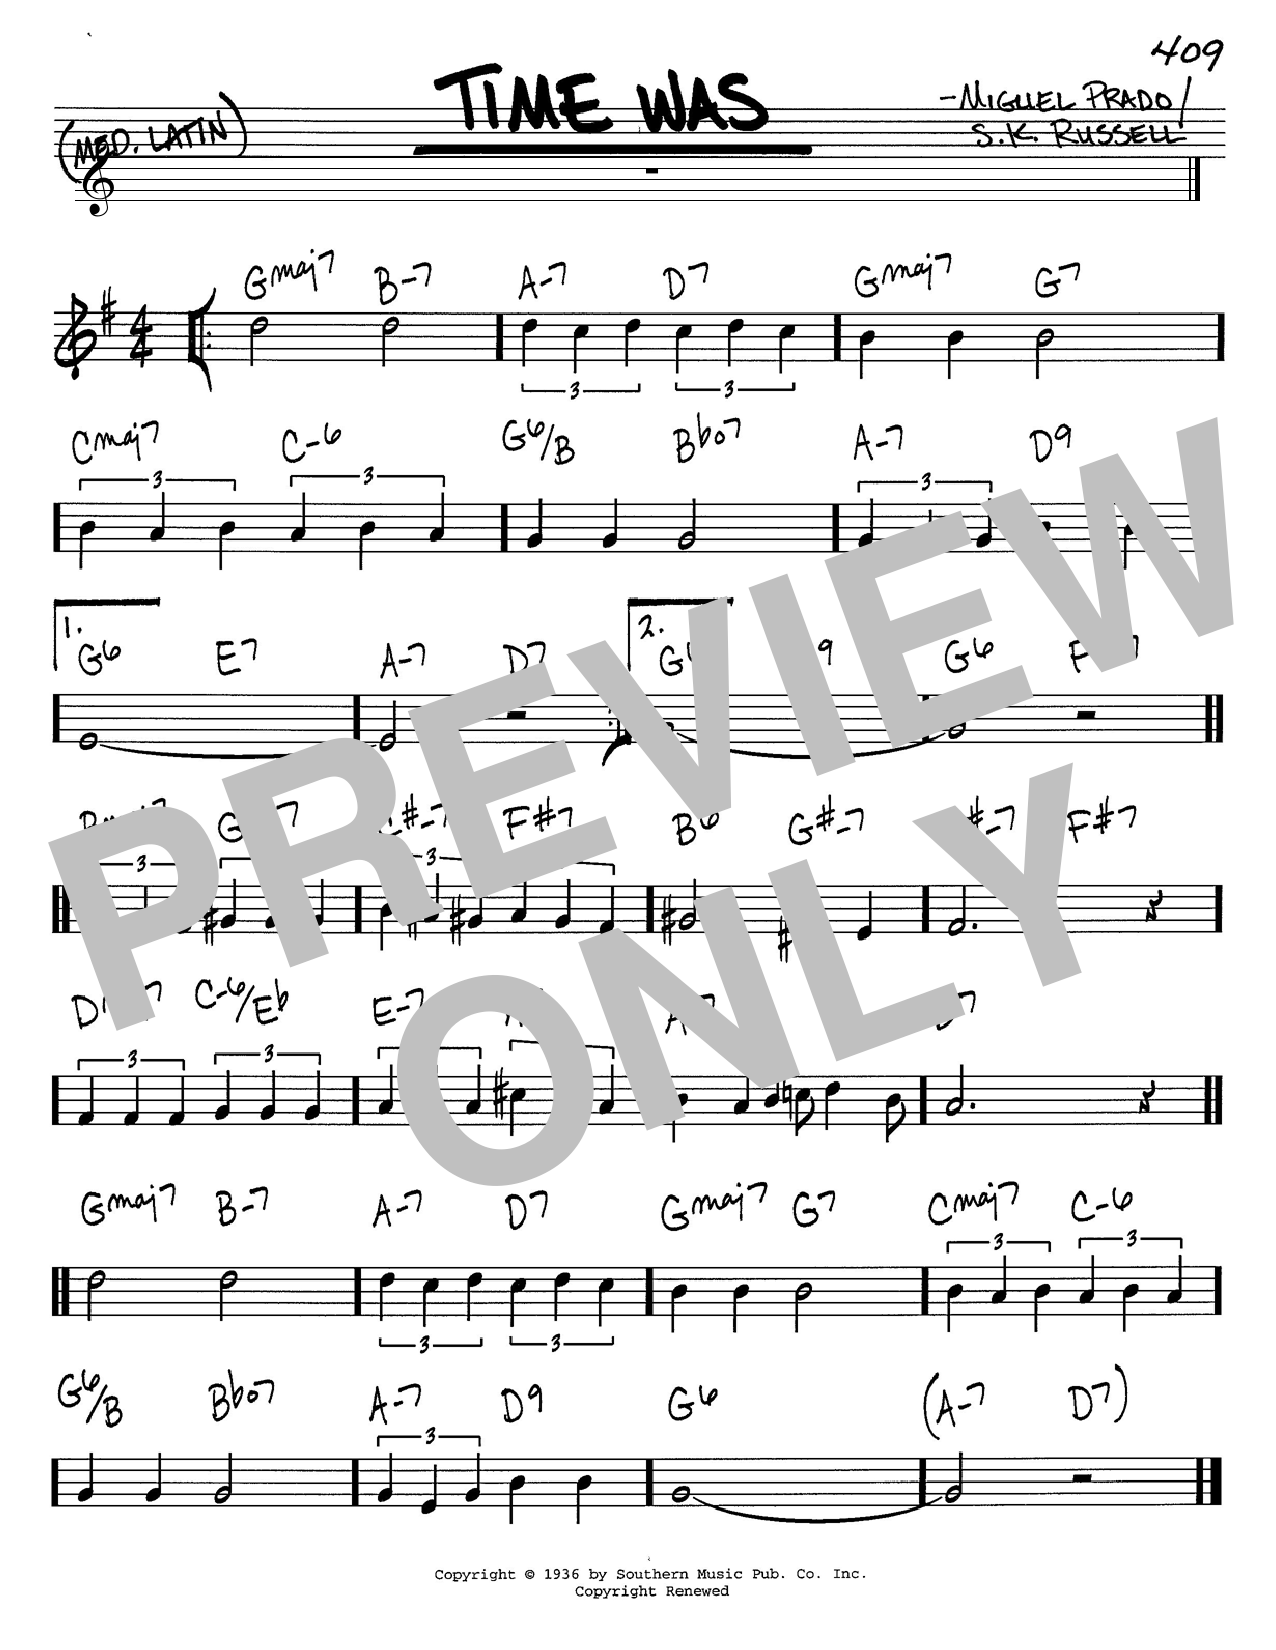 S. K. Russell Time Was sheet music notes and chords. Download Printable PDF.